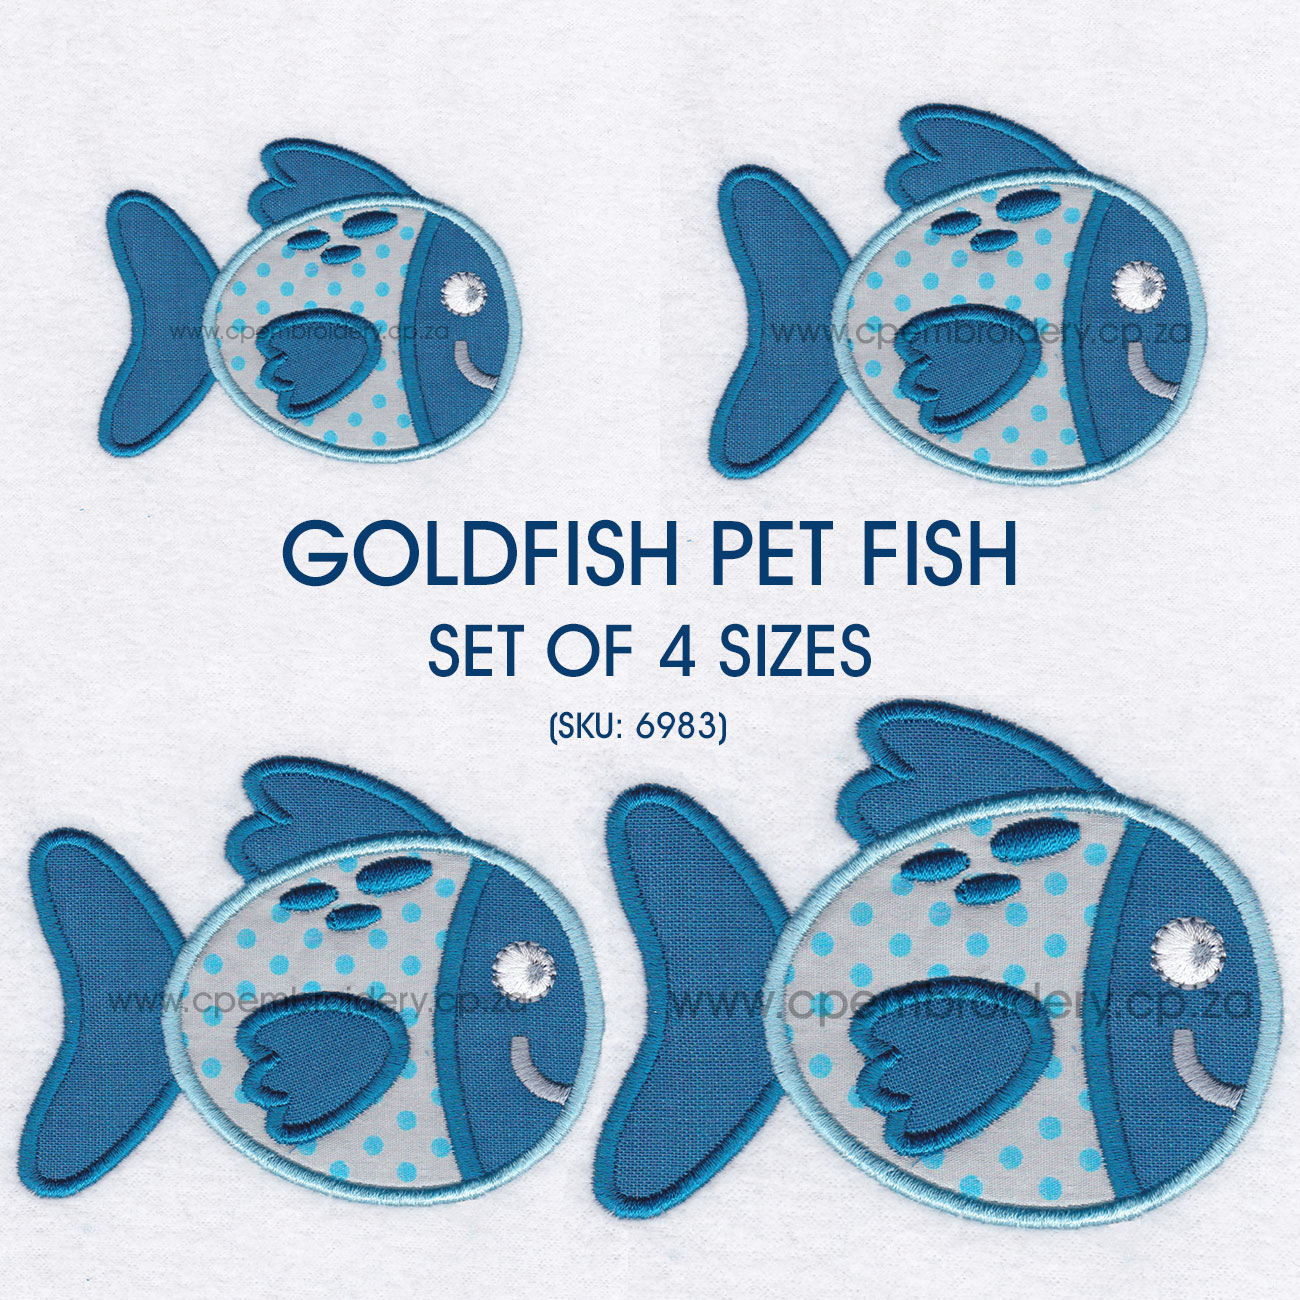 goldfish blue teal peacock pet fish cute friendly simple applique machine embroidery download design set sizes pack